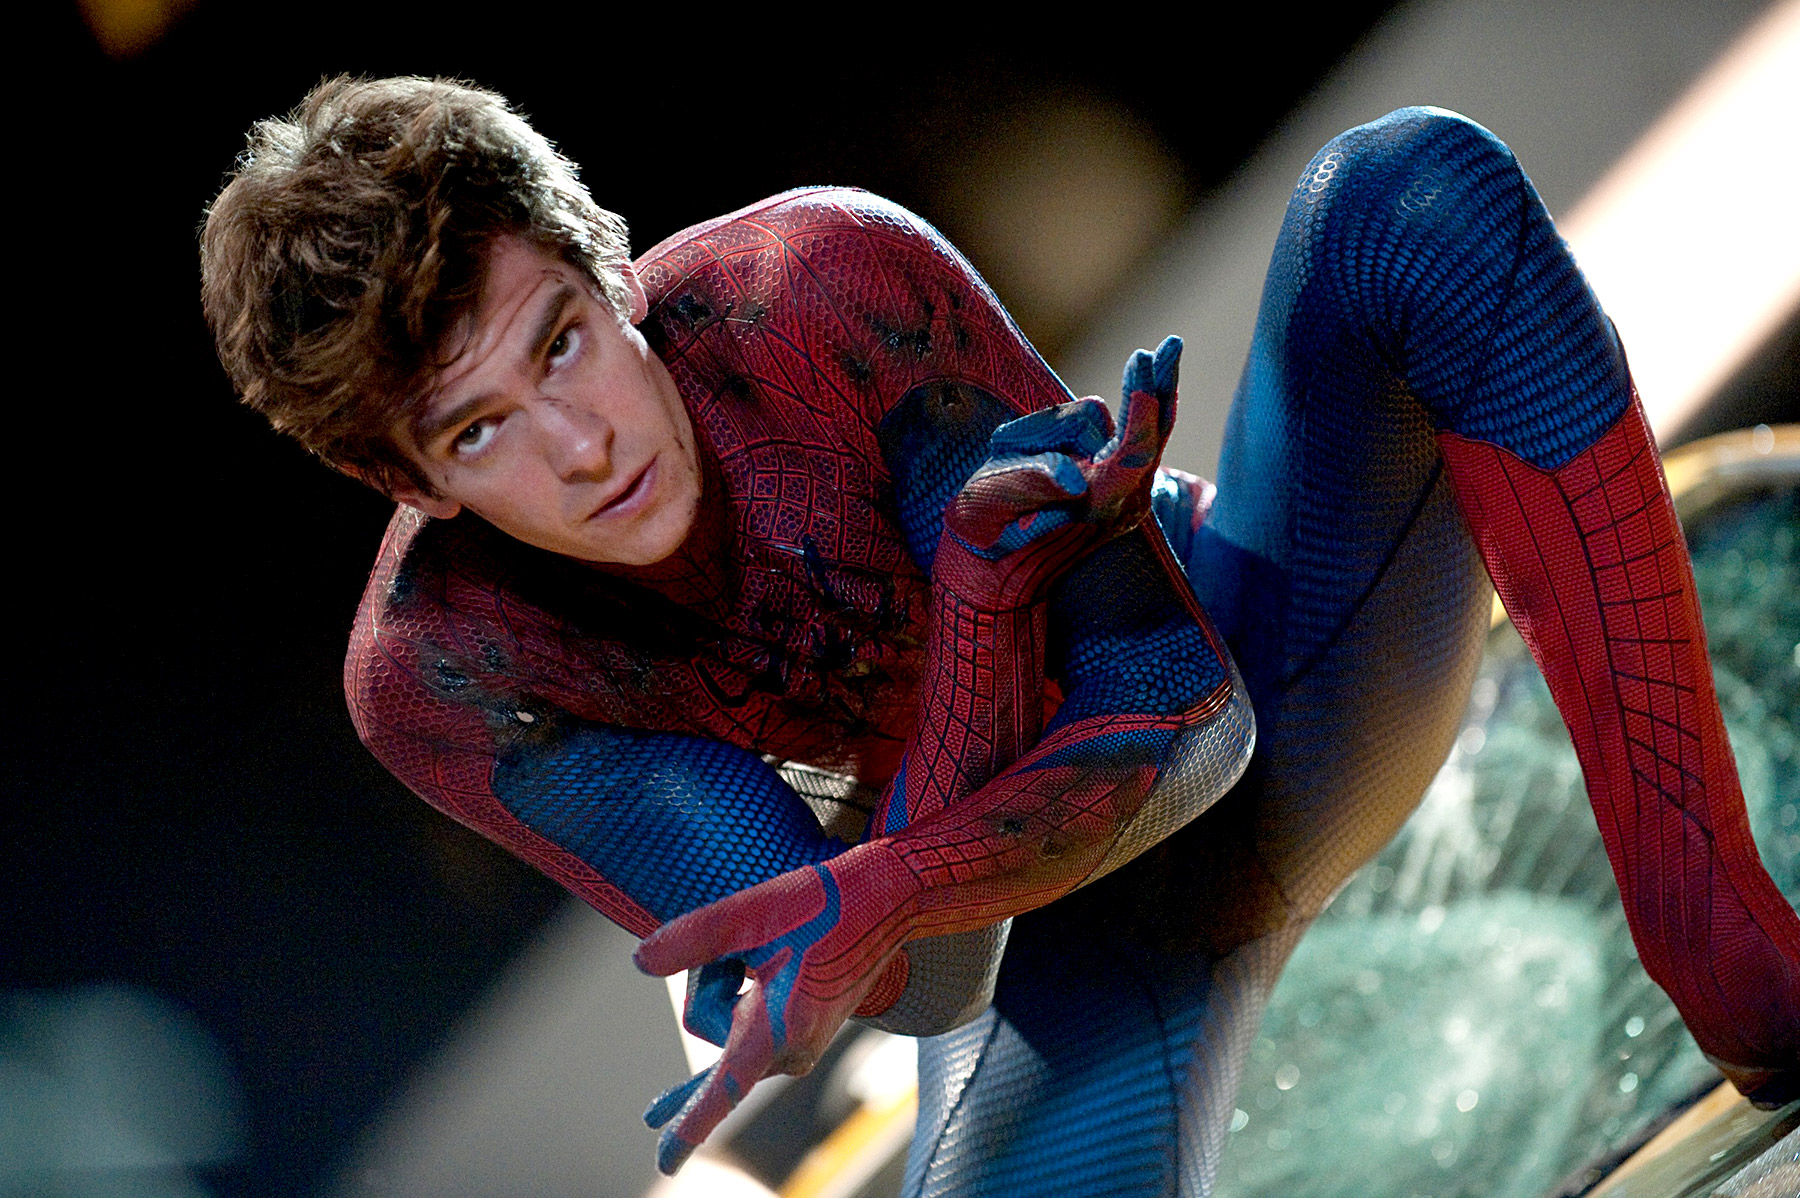 From the world wide web to web slinger! The Social Network star Andrew Garfield took on the role of your friendly neighborhood hero in 2012's The Amazing Spider-Man and 2014's The Amazing Spider-Man 2 .